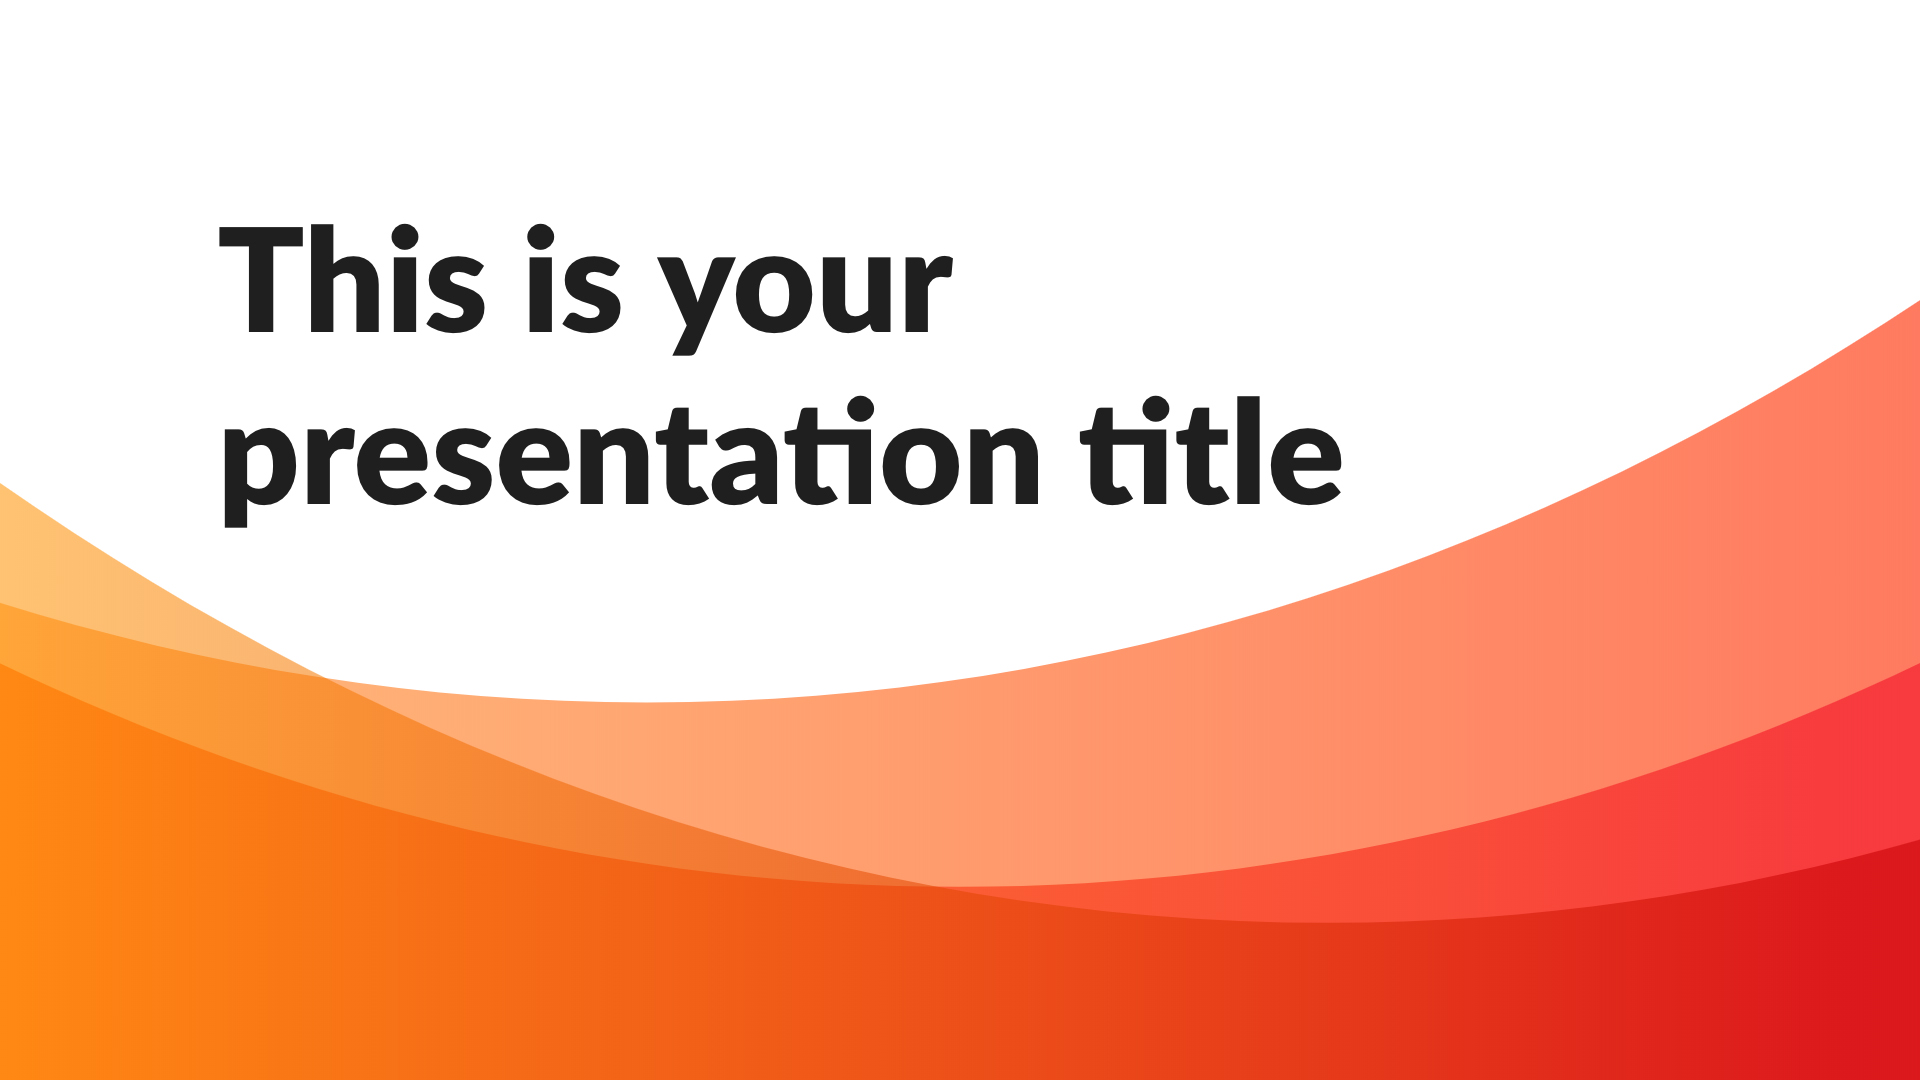 Free Powerpoint template or Google Slides theme with dynamic waves